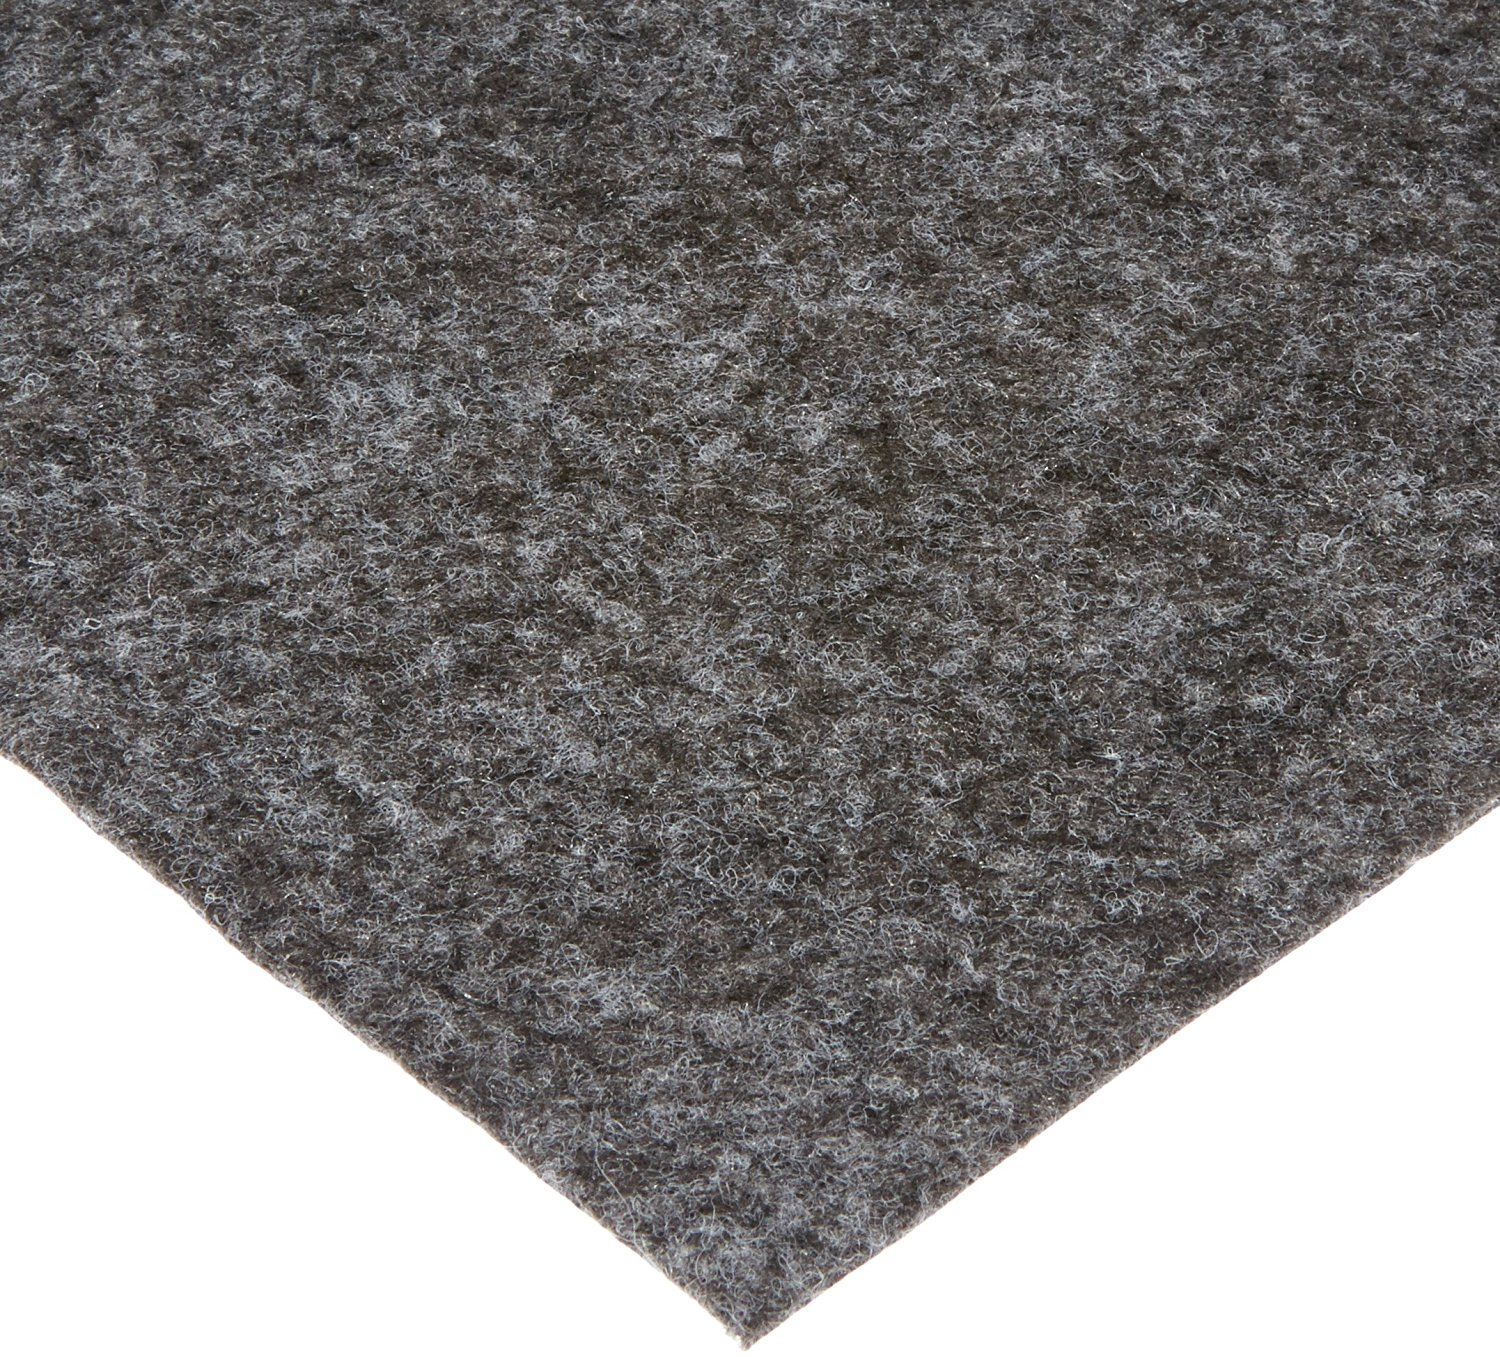 coverage flooring seams rubber mats effectiveness pinterest when the benefits enjoy profloortips on cost of quick and gym matting basement best minimal installing rolls images